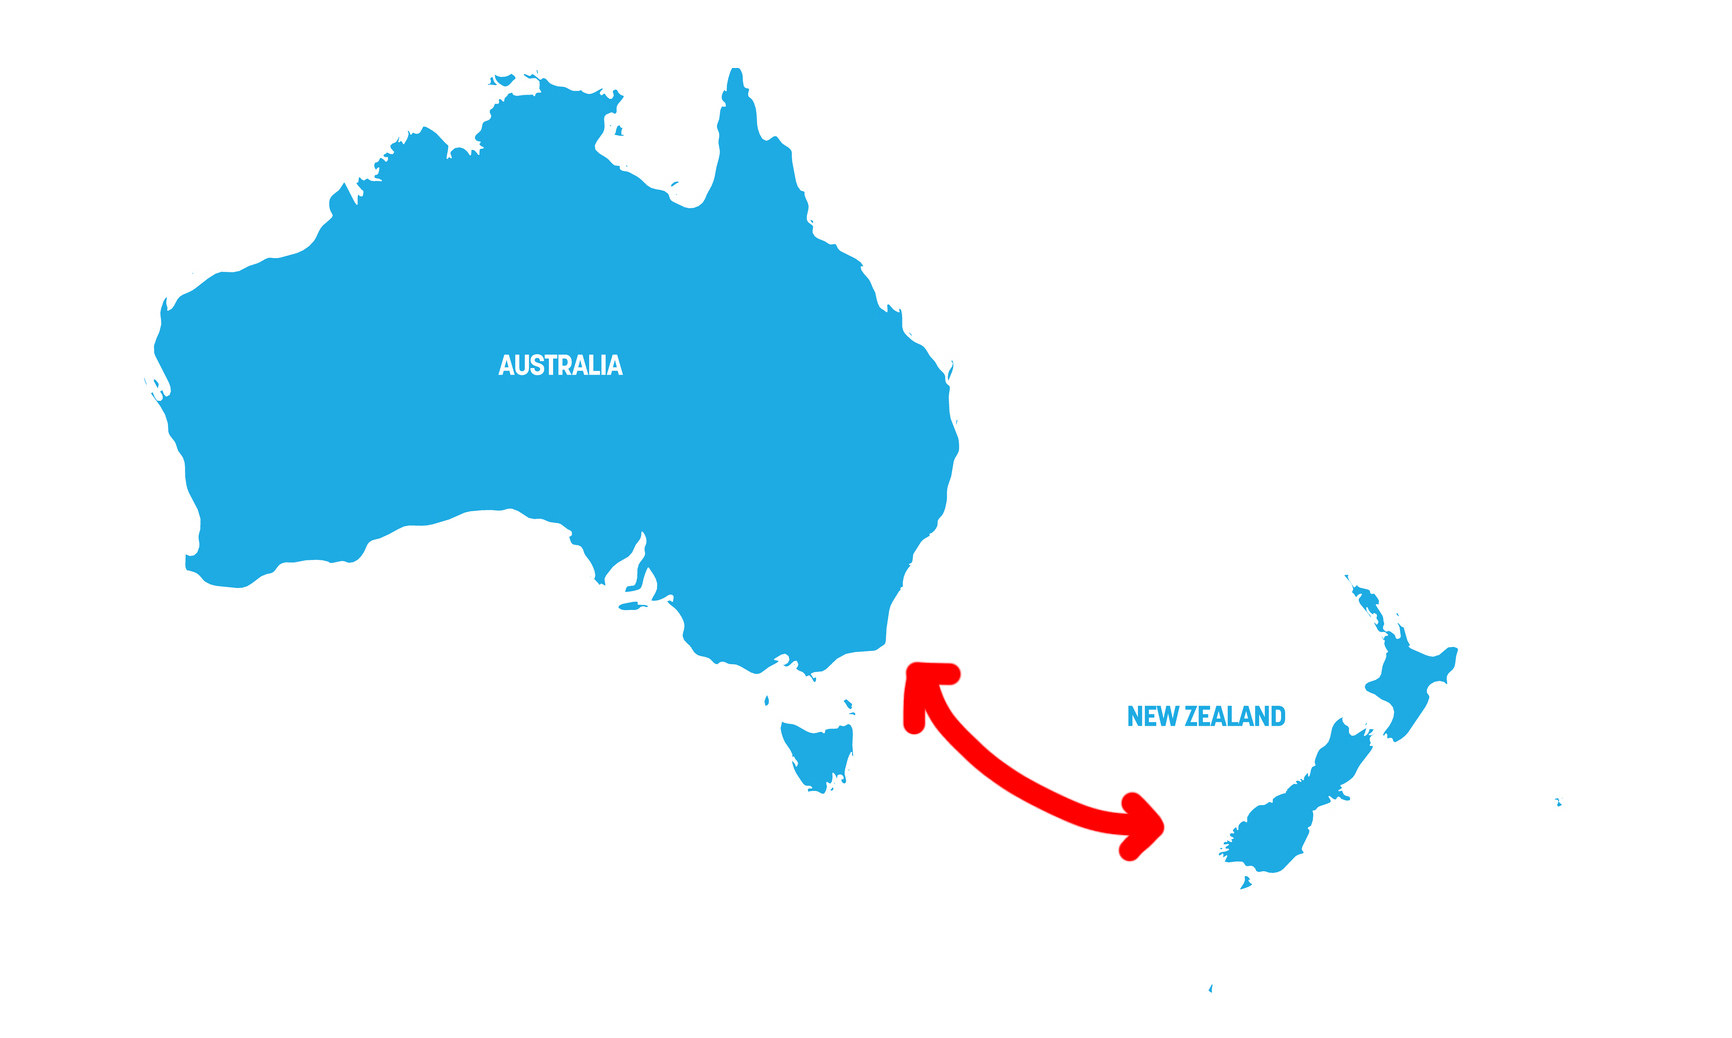 A map of Australia and New Zealand; there is an arrow indicting the distance between them